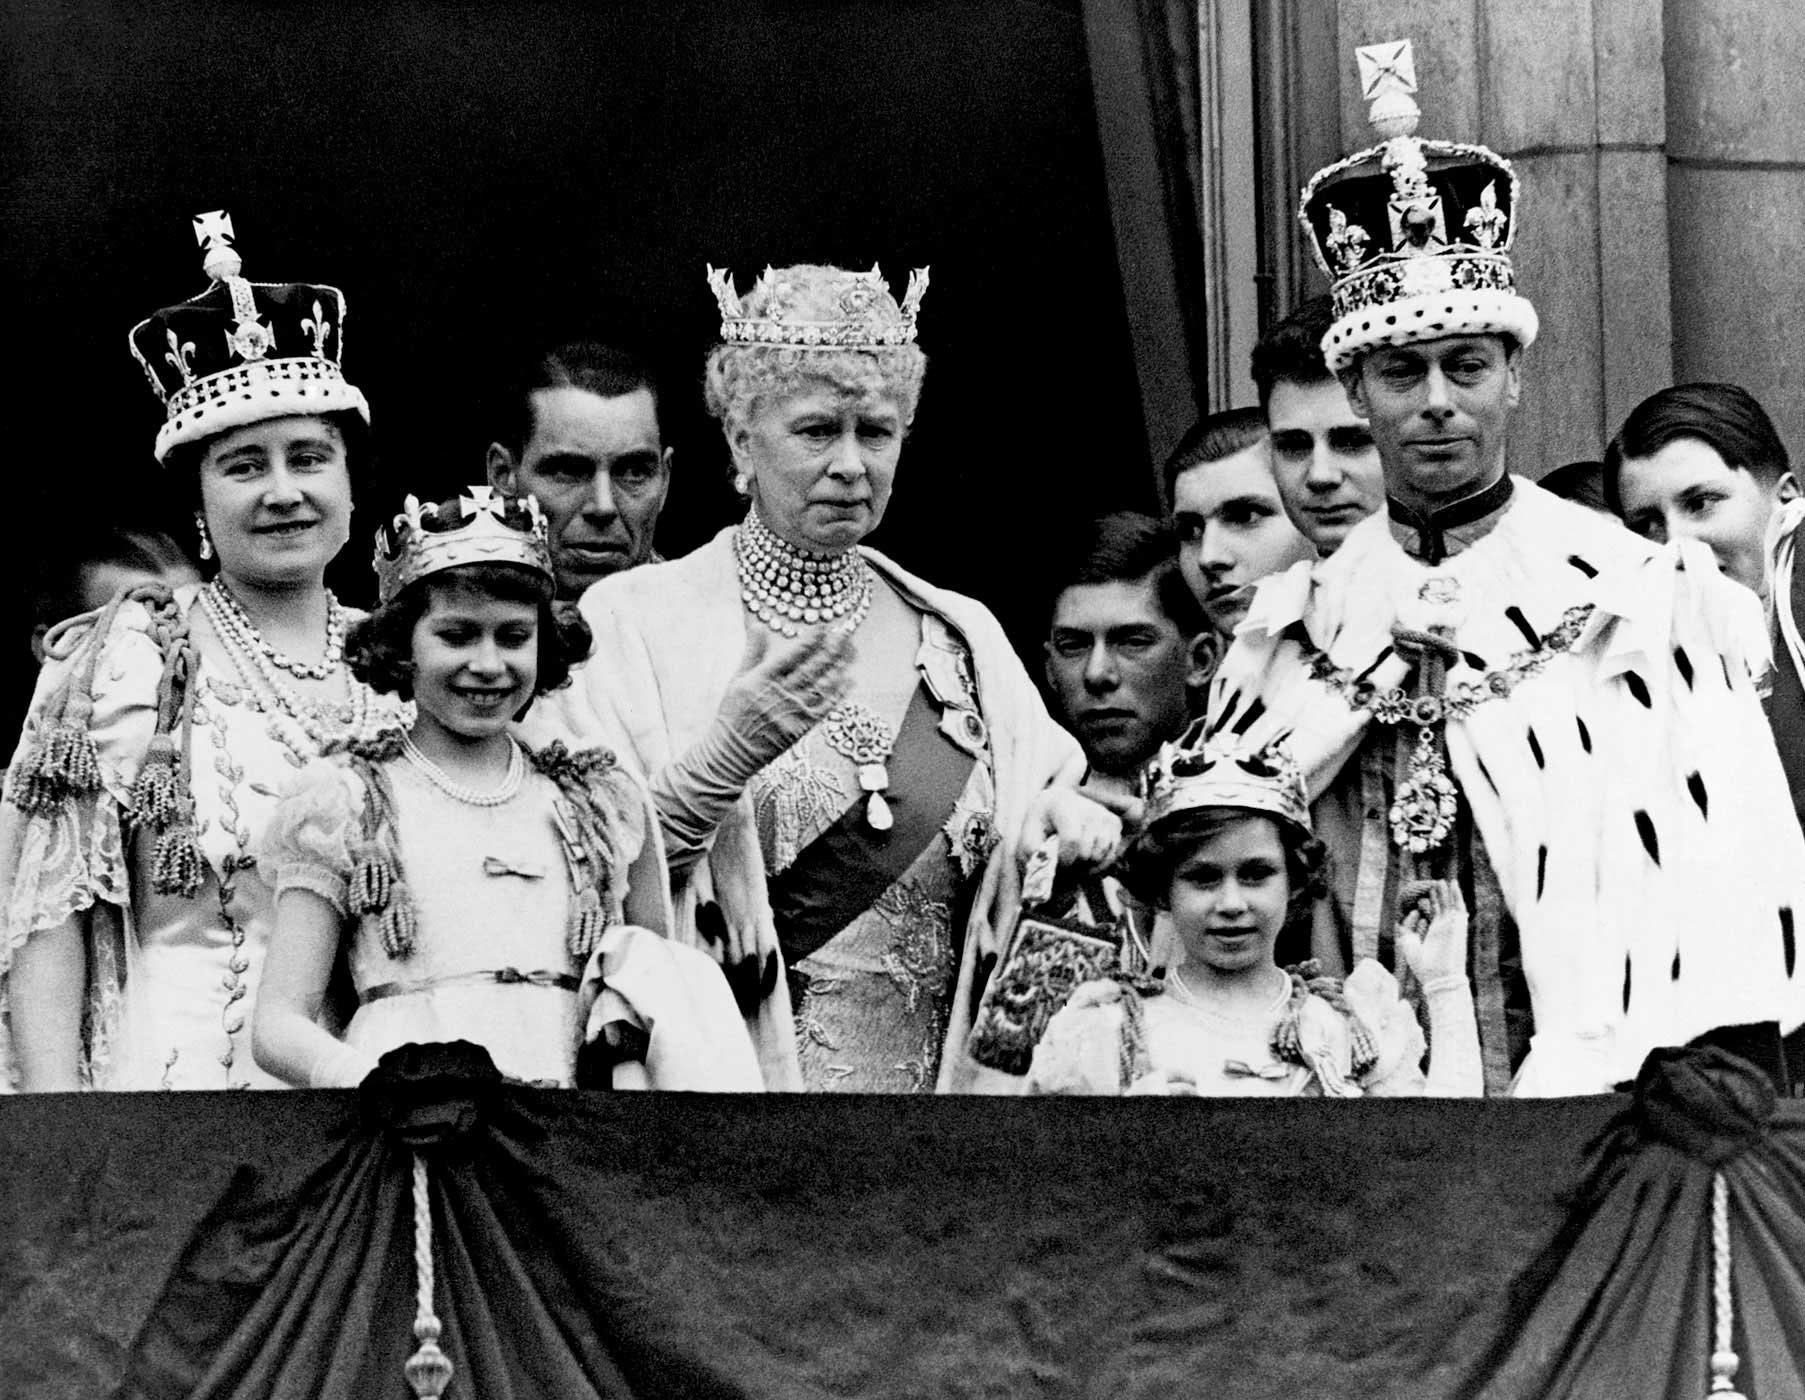 The royal family on the balcony at Buckingham Palace after the coronation of King George VI on May 13, 1937. After George's older brother Edward abdicated the throne to marry a socialite divorcée named Wallis Simpson, Elizabeth's father became King. As the oldest child, 11-year-old Elizabeth became the heir presumptive to the throne.